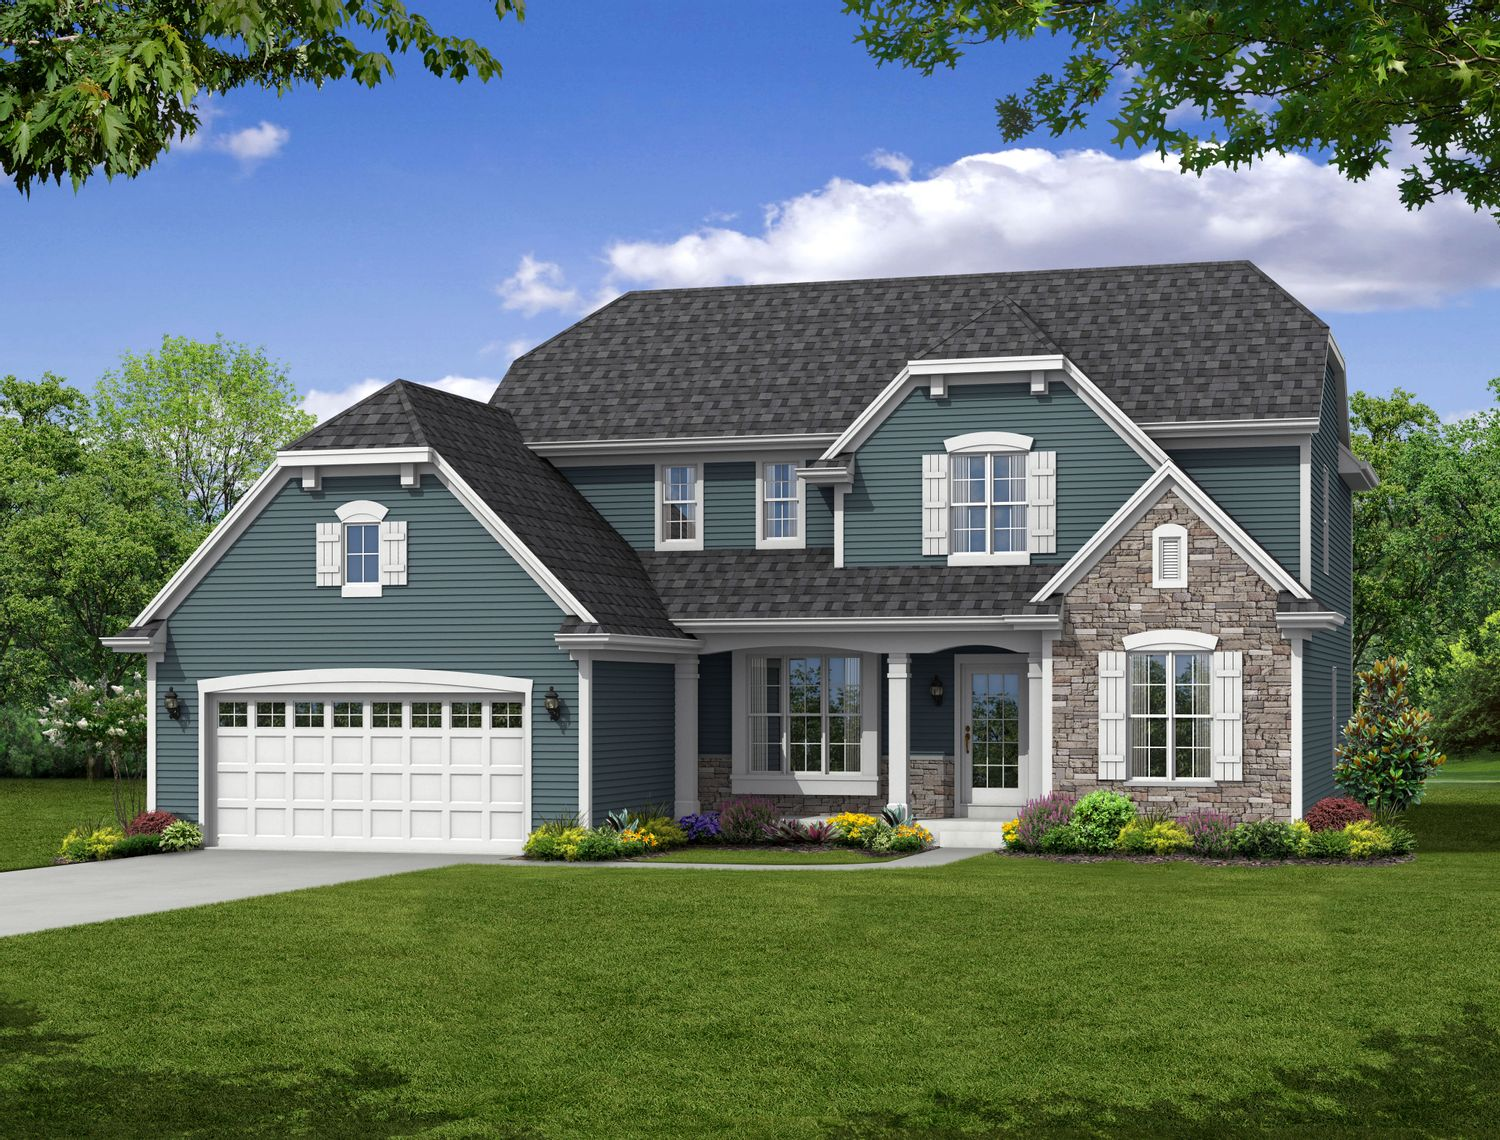 Single Family for Sale at Hunter Oaks - The Charlotte, Plan 2460 Hwy T & Hunter Oaks Boulevard Watertown, Wisconsin 53094 United States